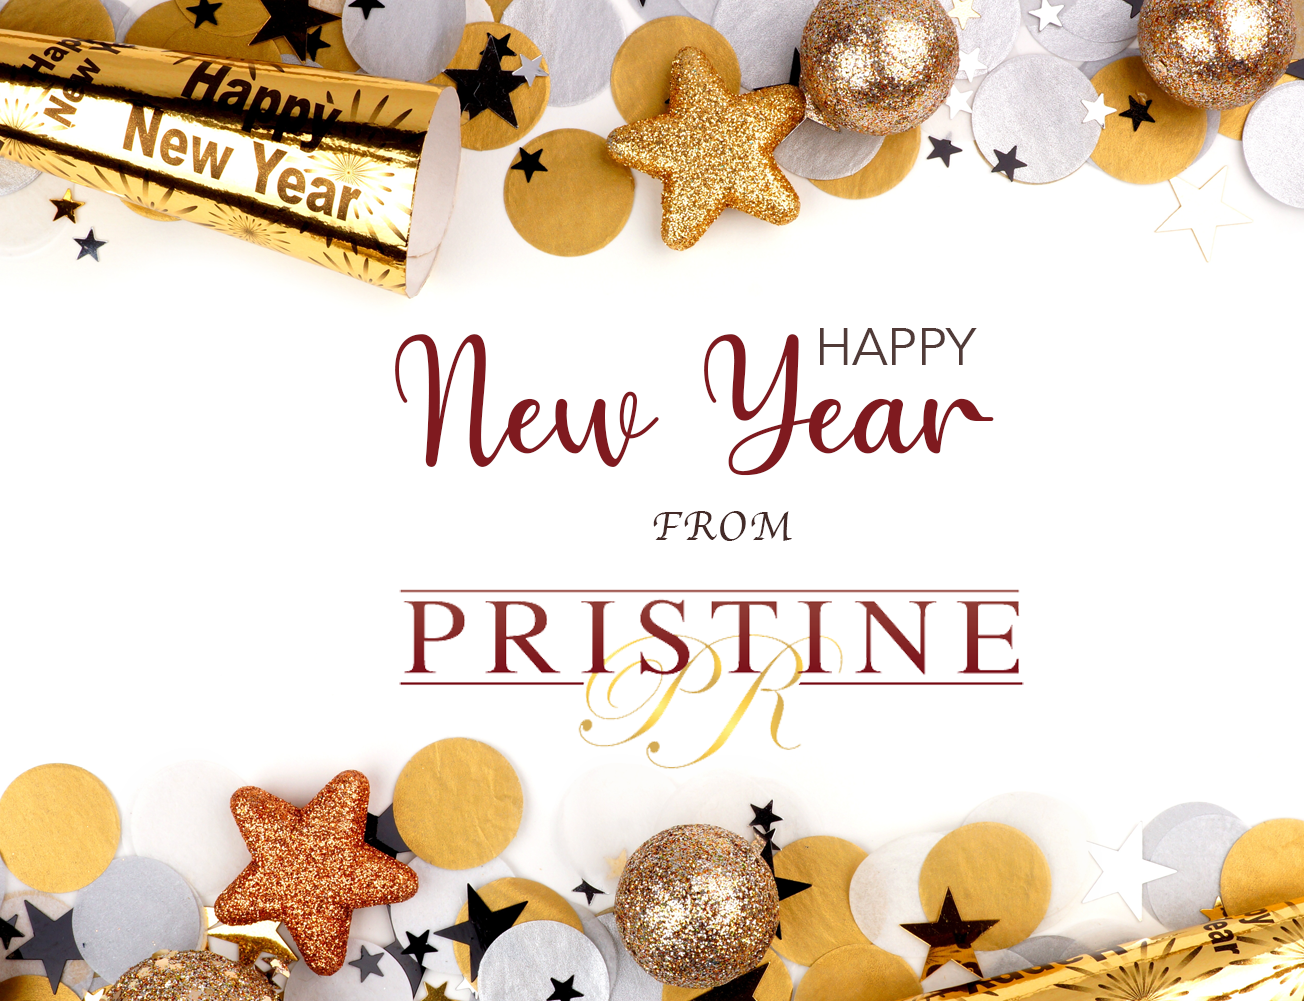 Happy New Year From Pristine PR!